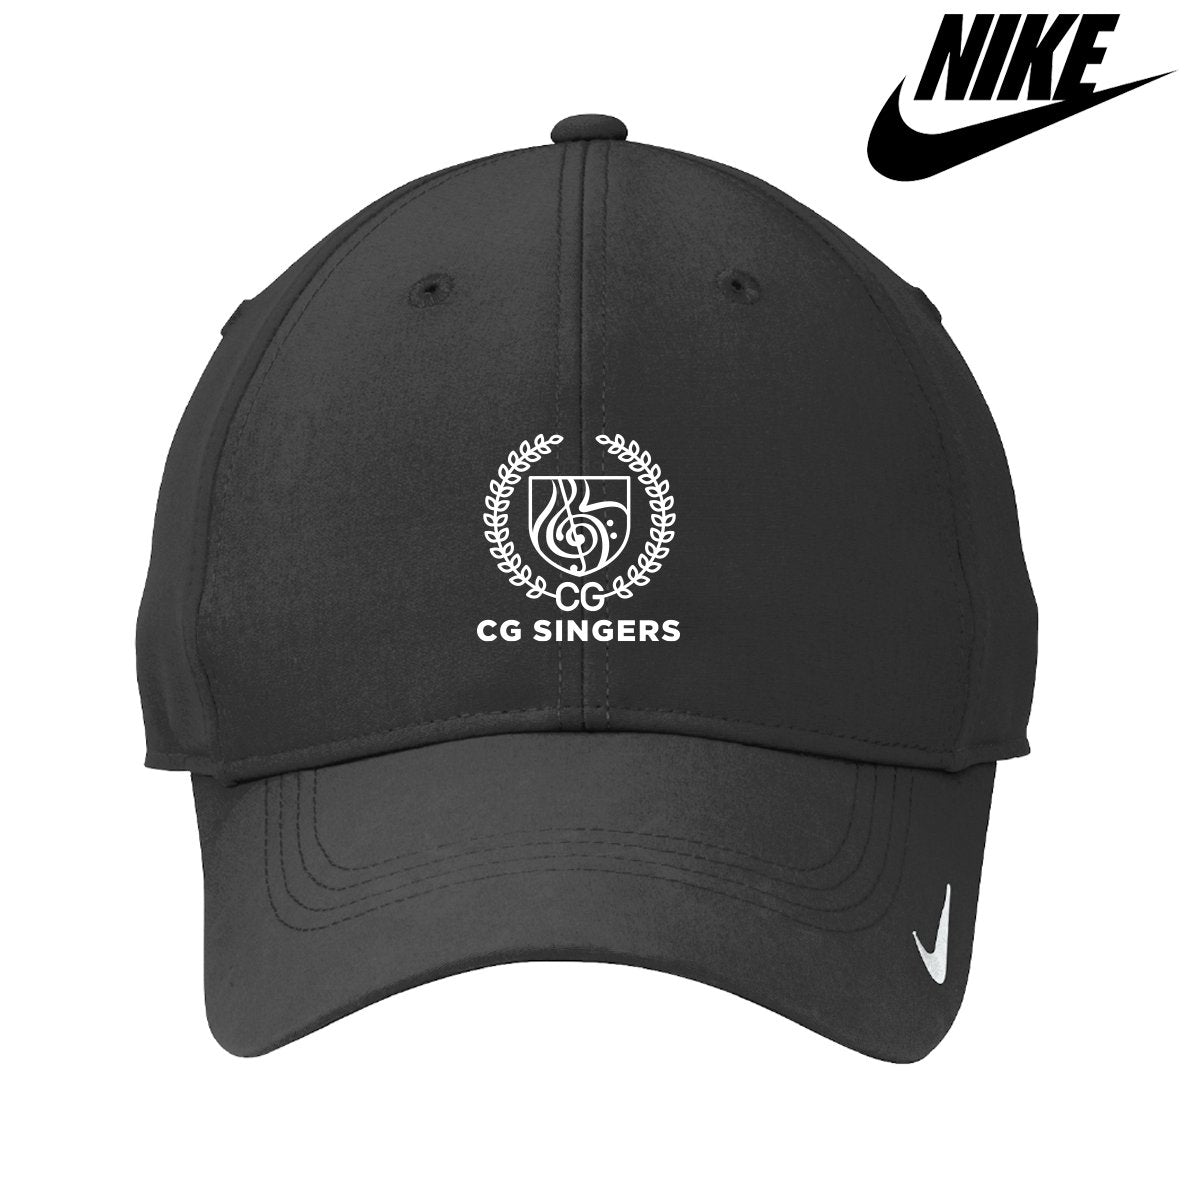 Center Grove Singers Black Nike Hat